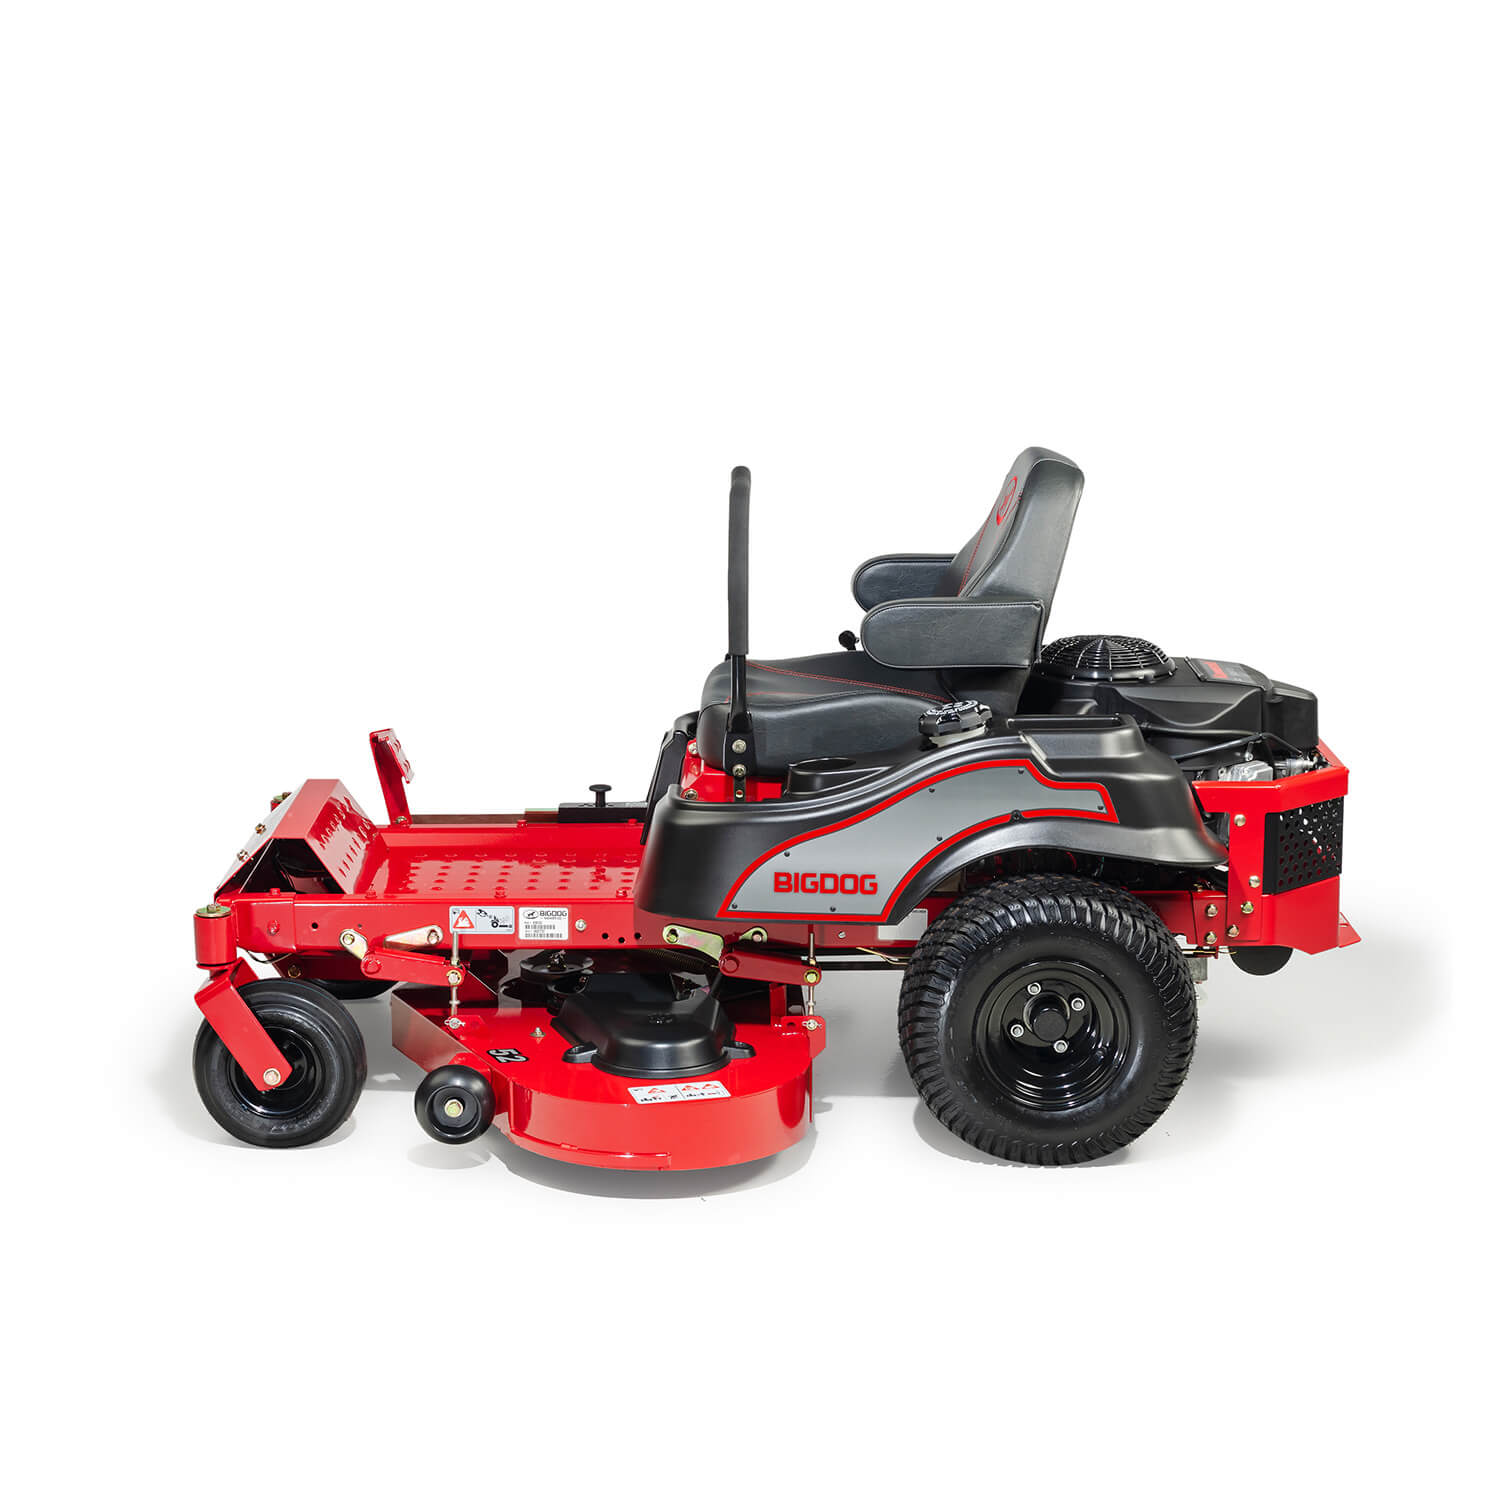 Image of the rear of a red BigDog mower